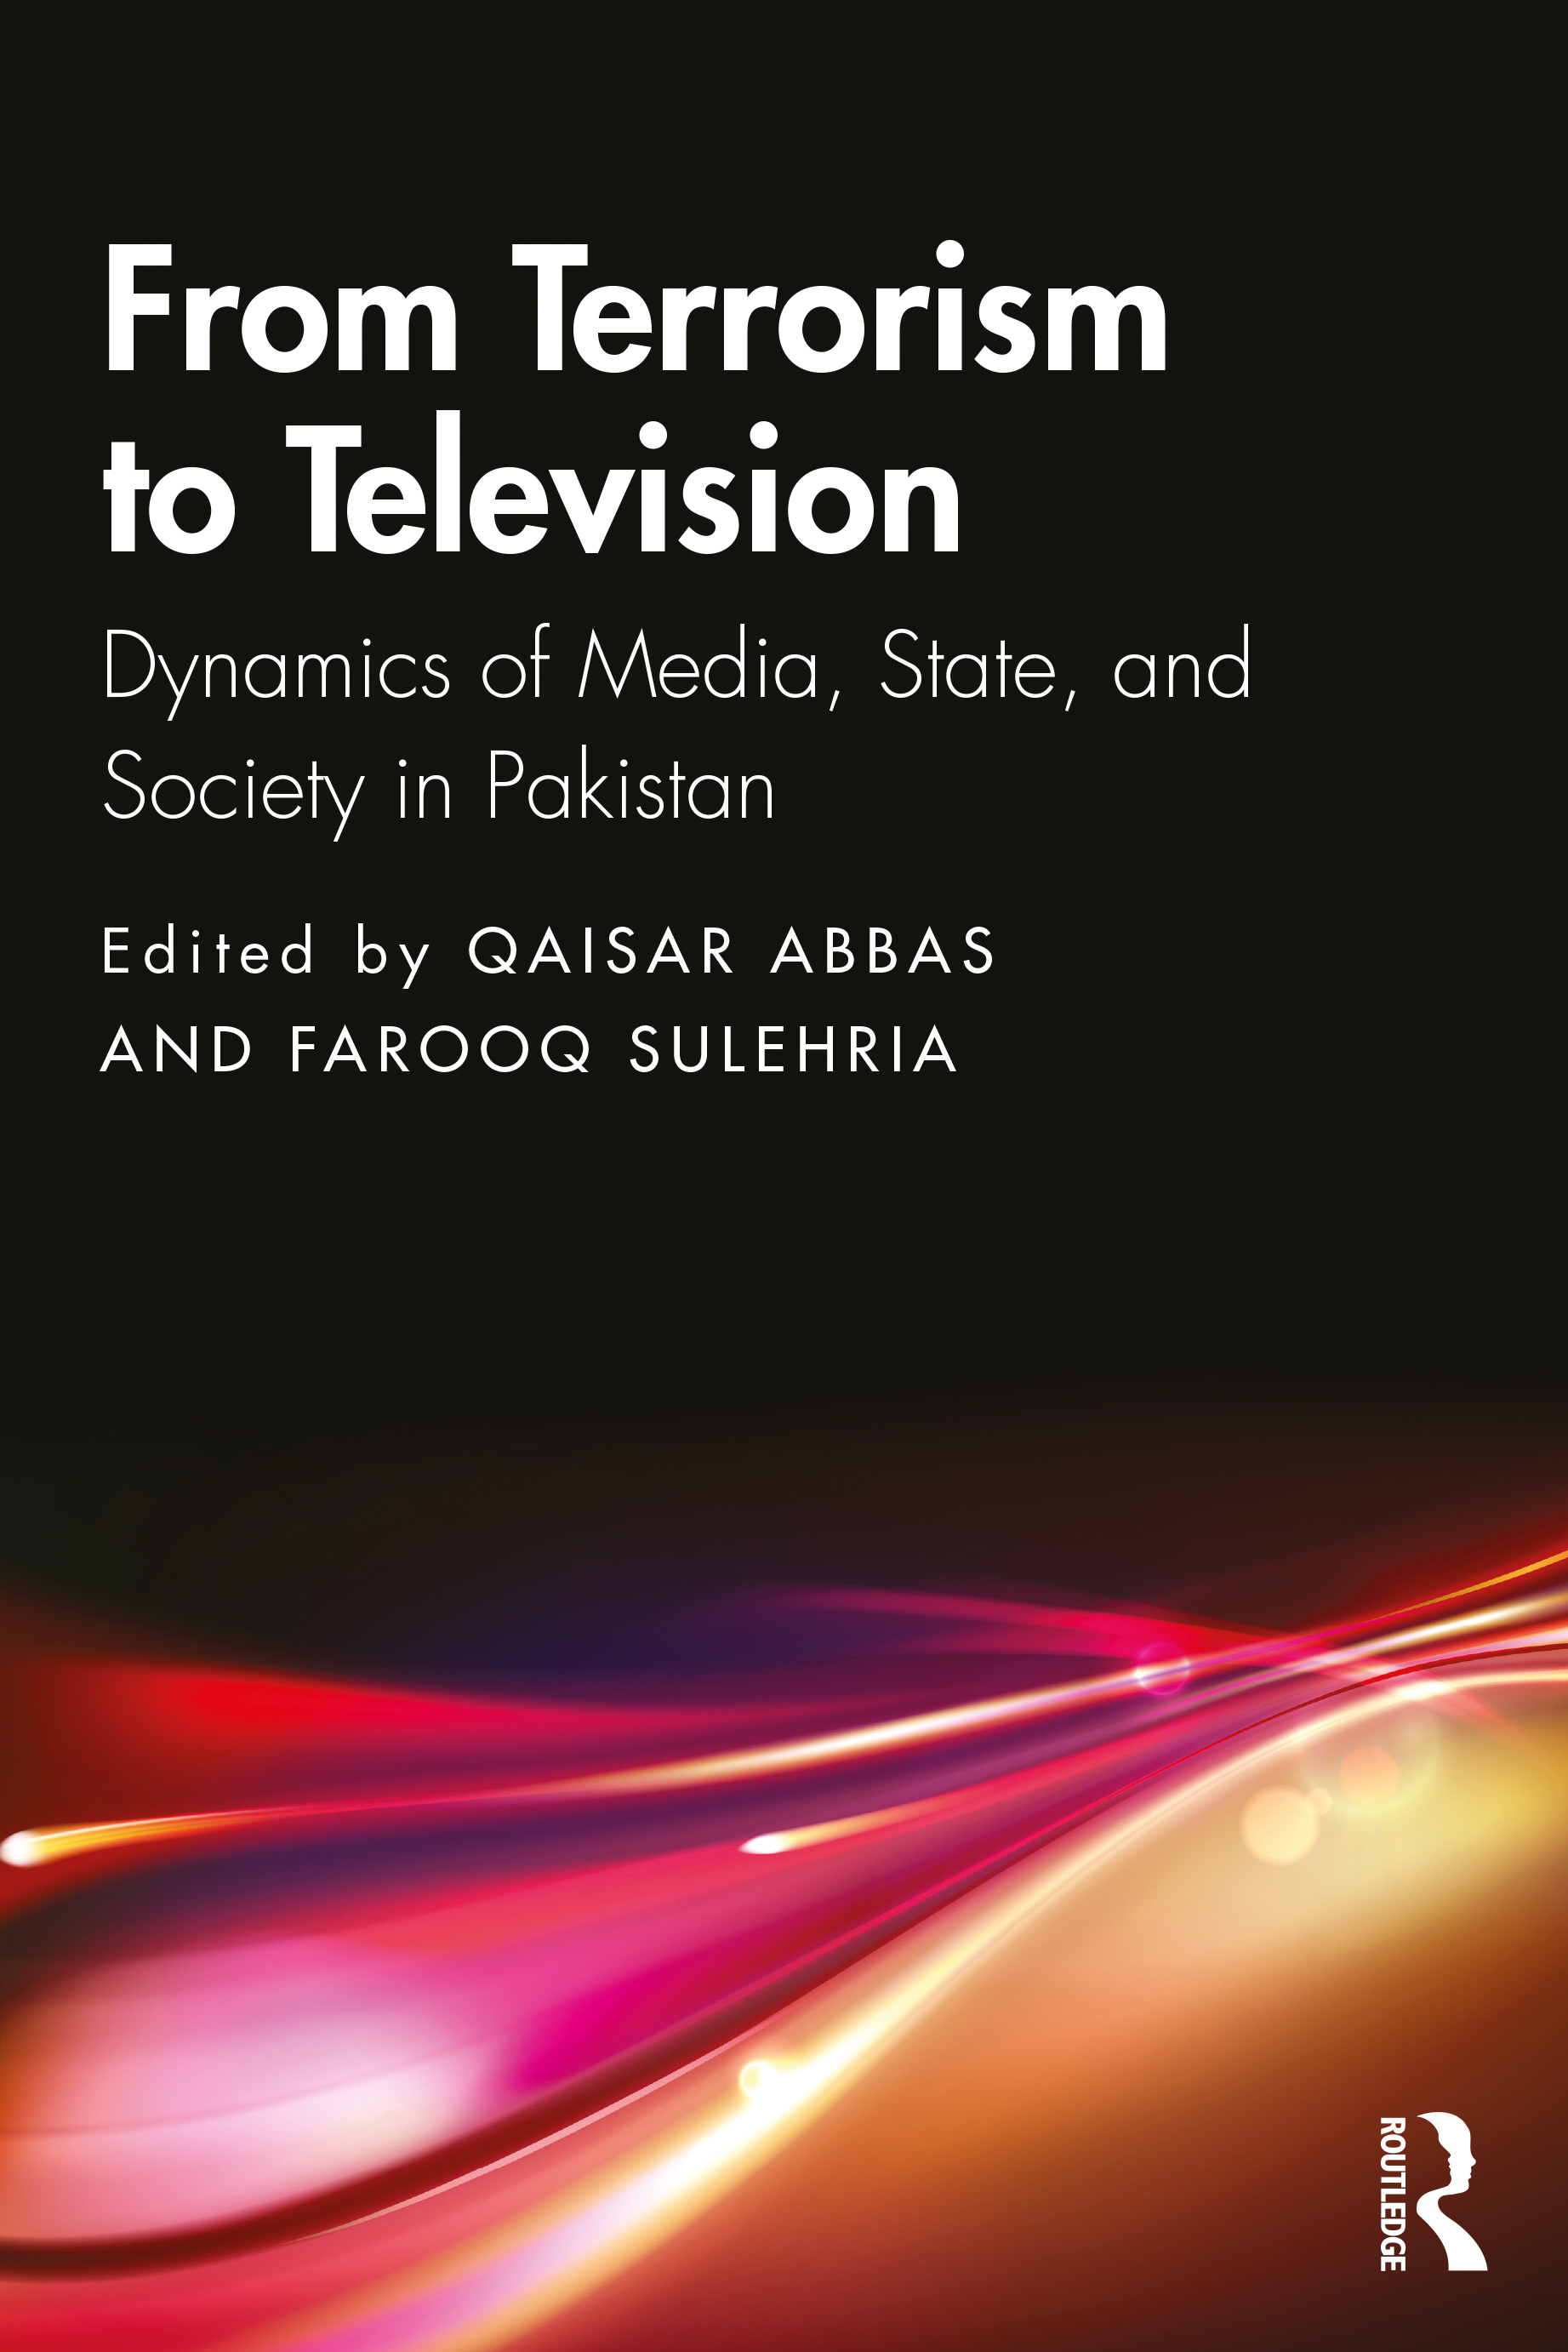 From Terrorism to Television: Dynamics of Media, State, and Society in Pakistan book cover